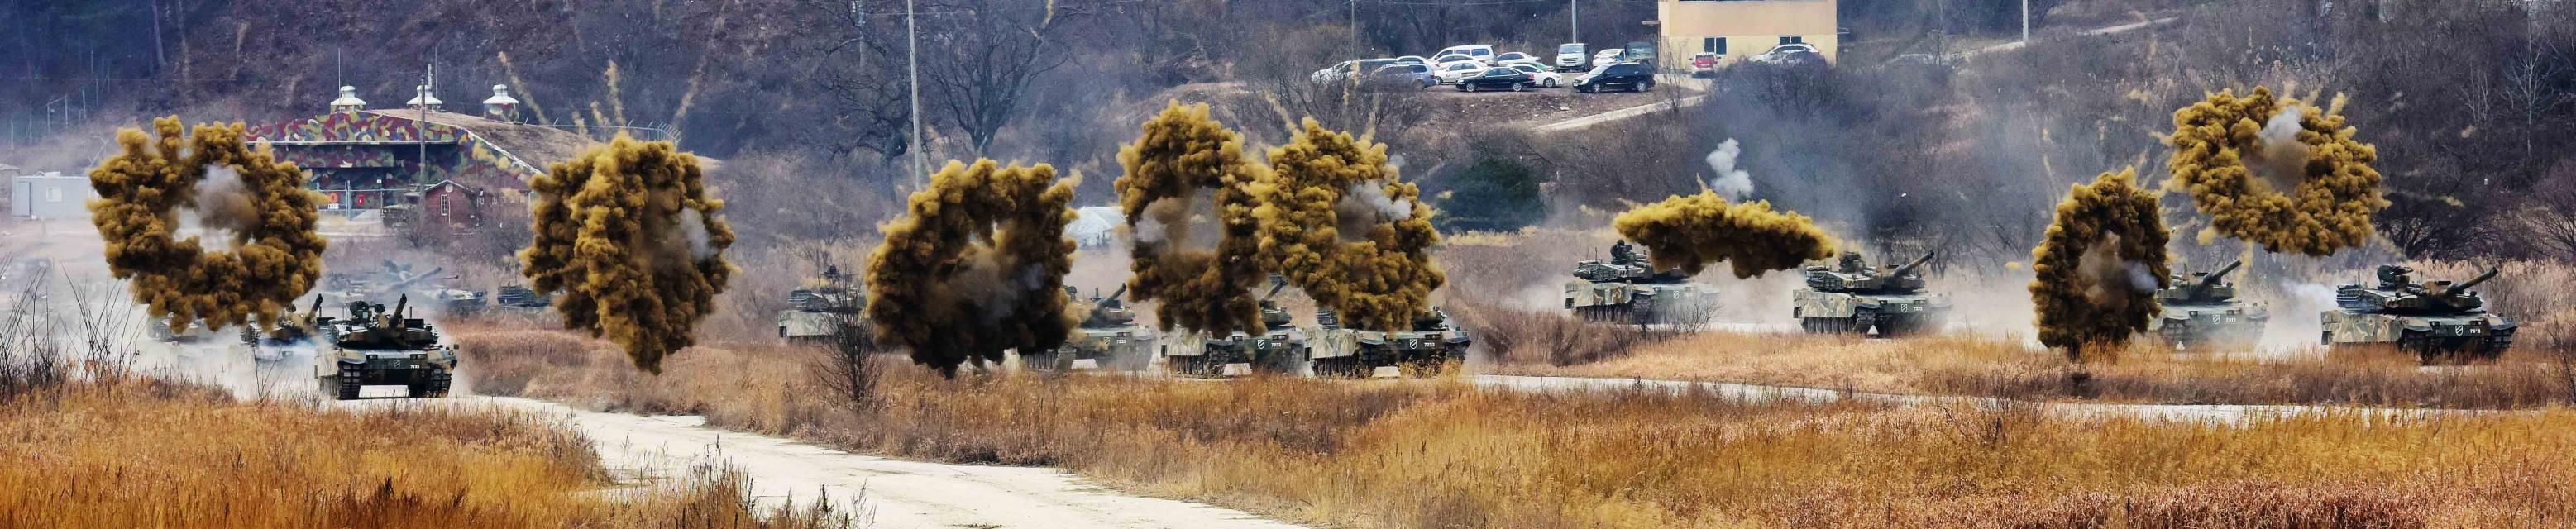 K2 Black Panther MBTs of the Republic of Korea Army deploy smoke grenades during a training exercise [3115 x 640]